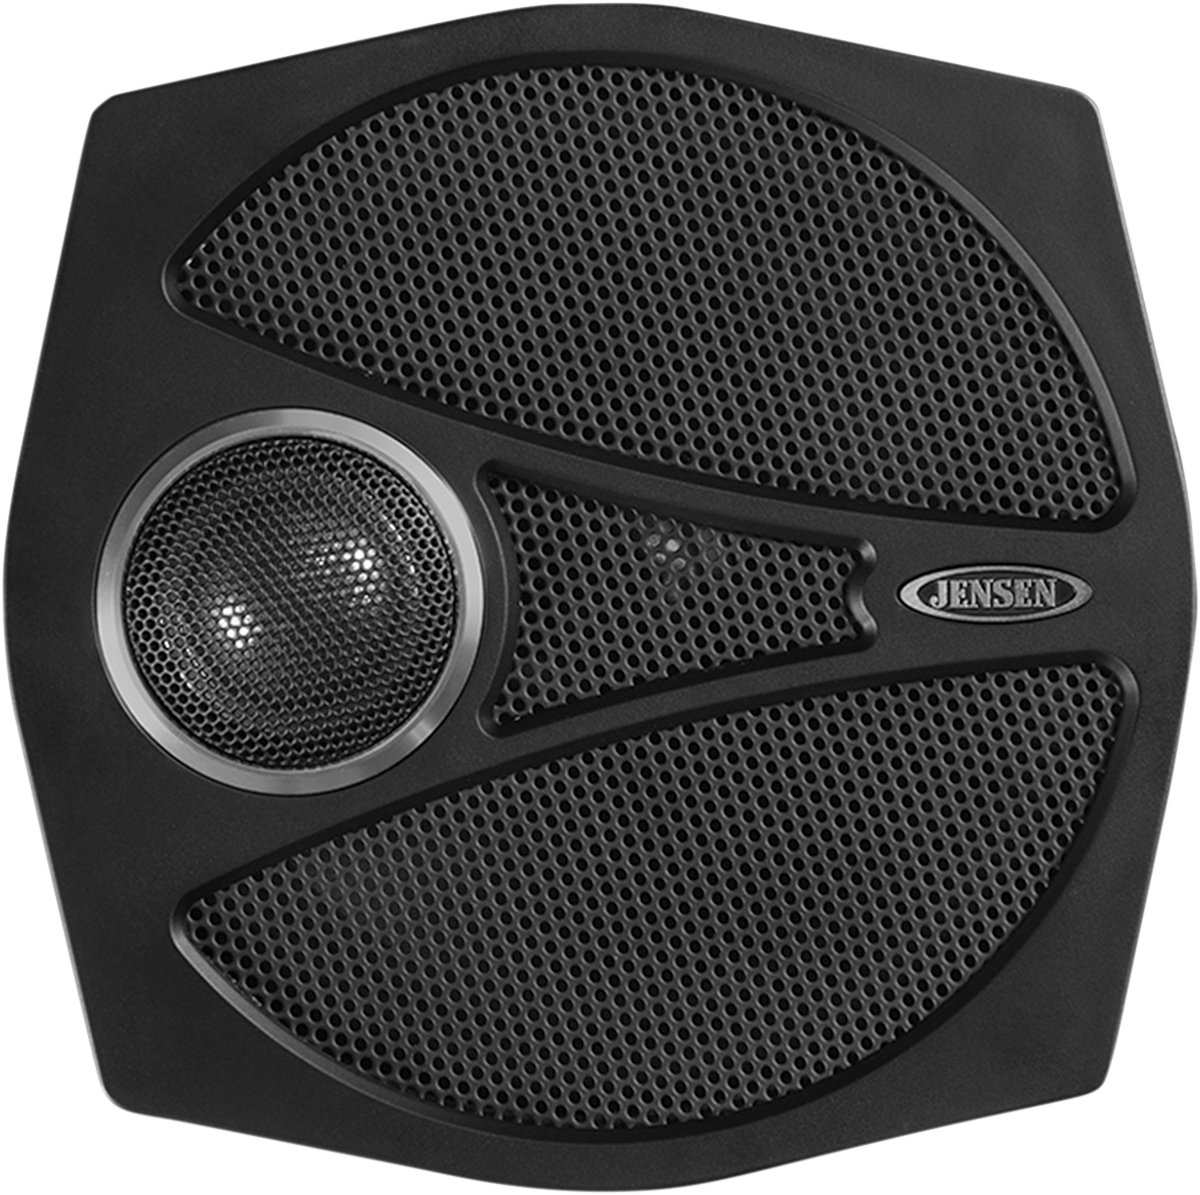 JENSEN HDX525 51/4'' High Performance 2-Way Speaker by Jensen (Image #1)